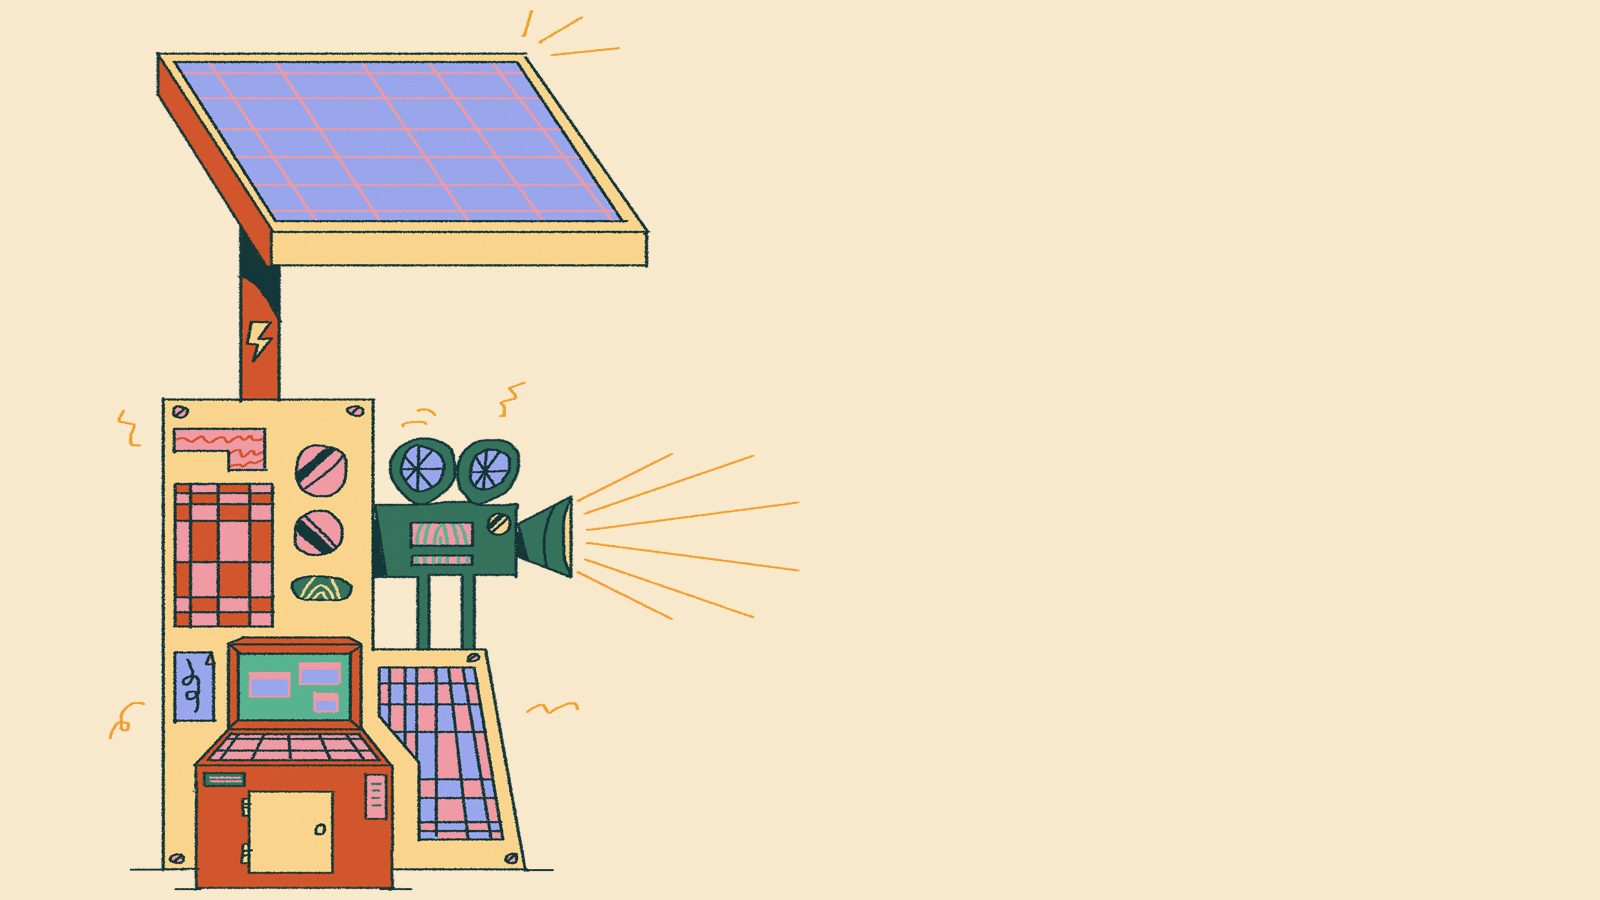 An illustration of a solar panel over a film projector